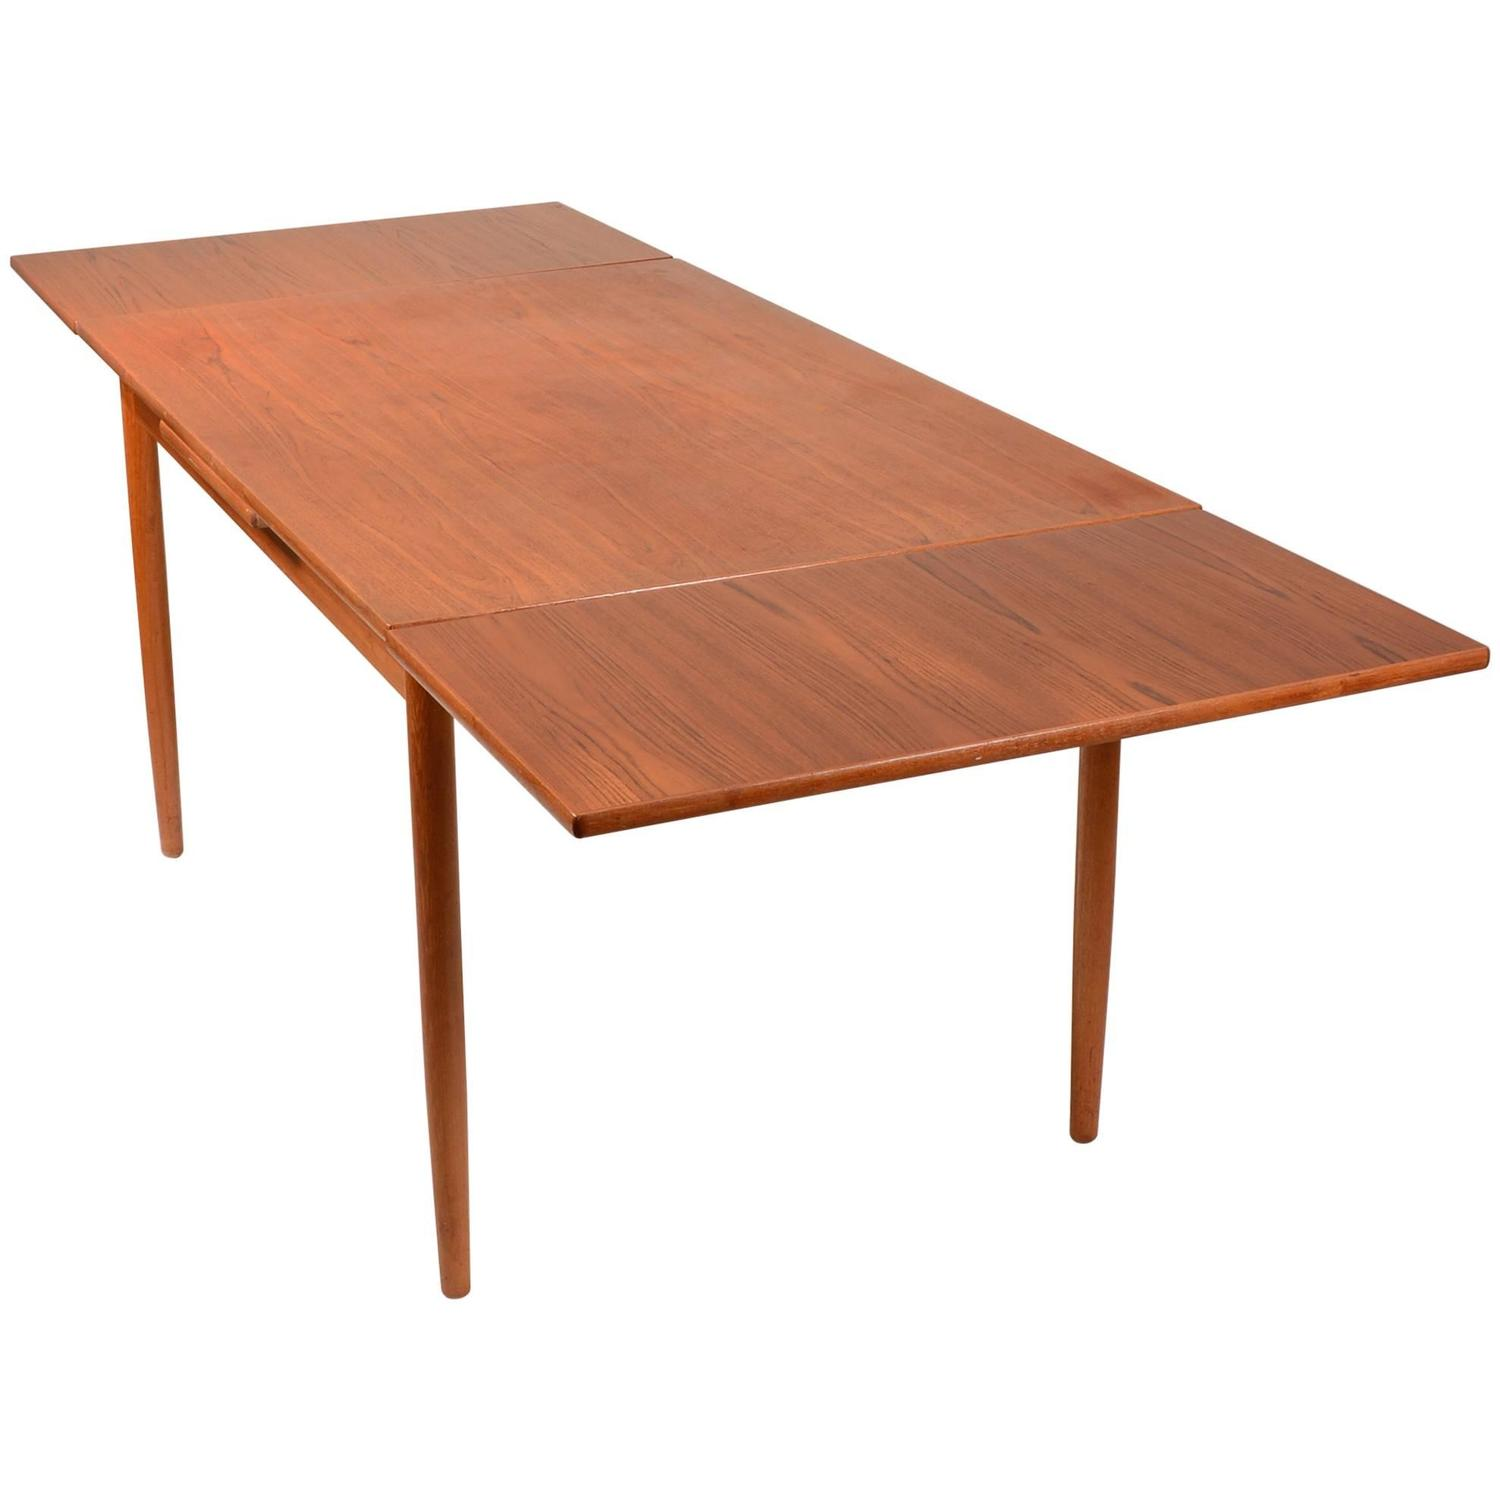 Danish modern draw leaf extendable dining table at 1stdibs for Danish modern dining room table